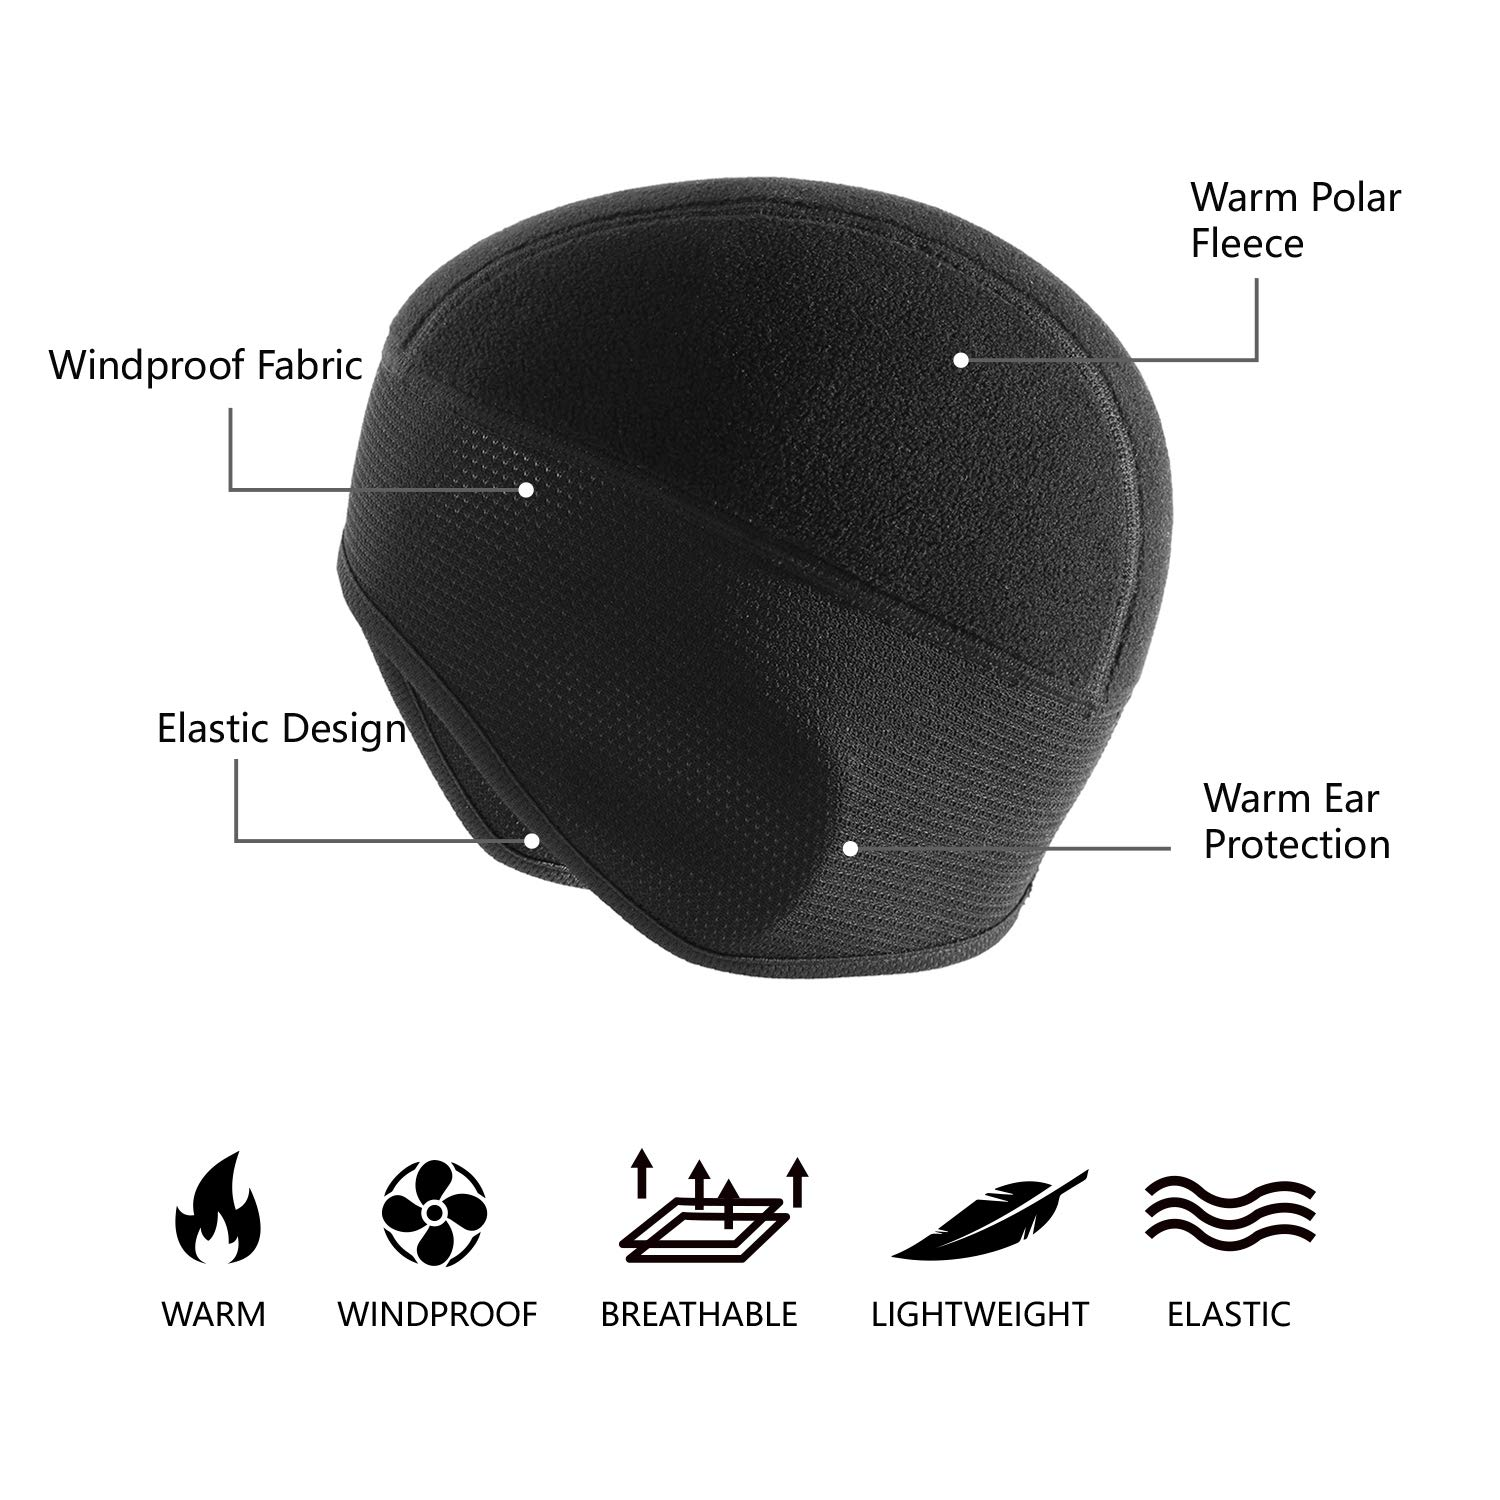 b52c185a Amazon.com: HiCool Skull Cap, Helmet Liner Cycling Running Beanie Thermal  Hat Headwear with Ear Covers, Fits Under Helmets for Adults Men and Women:  Sports ...